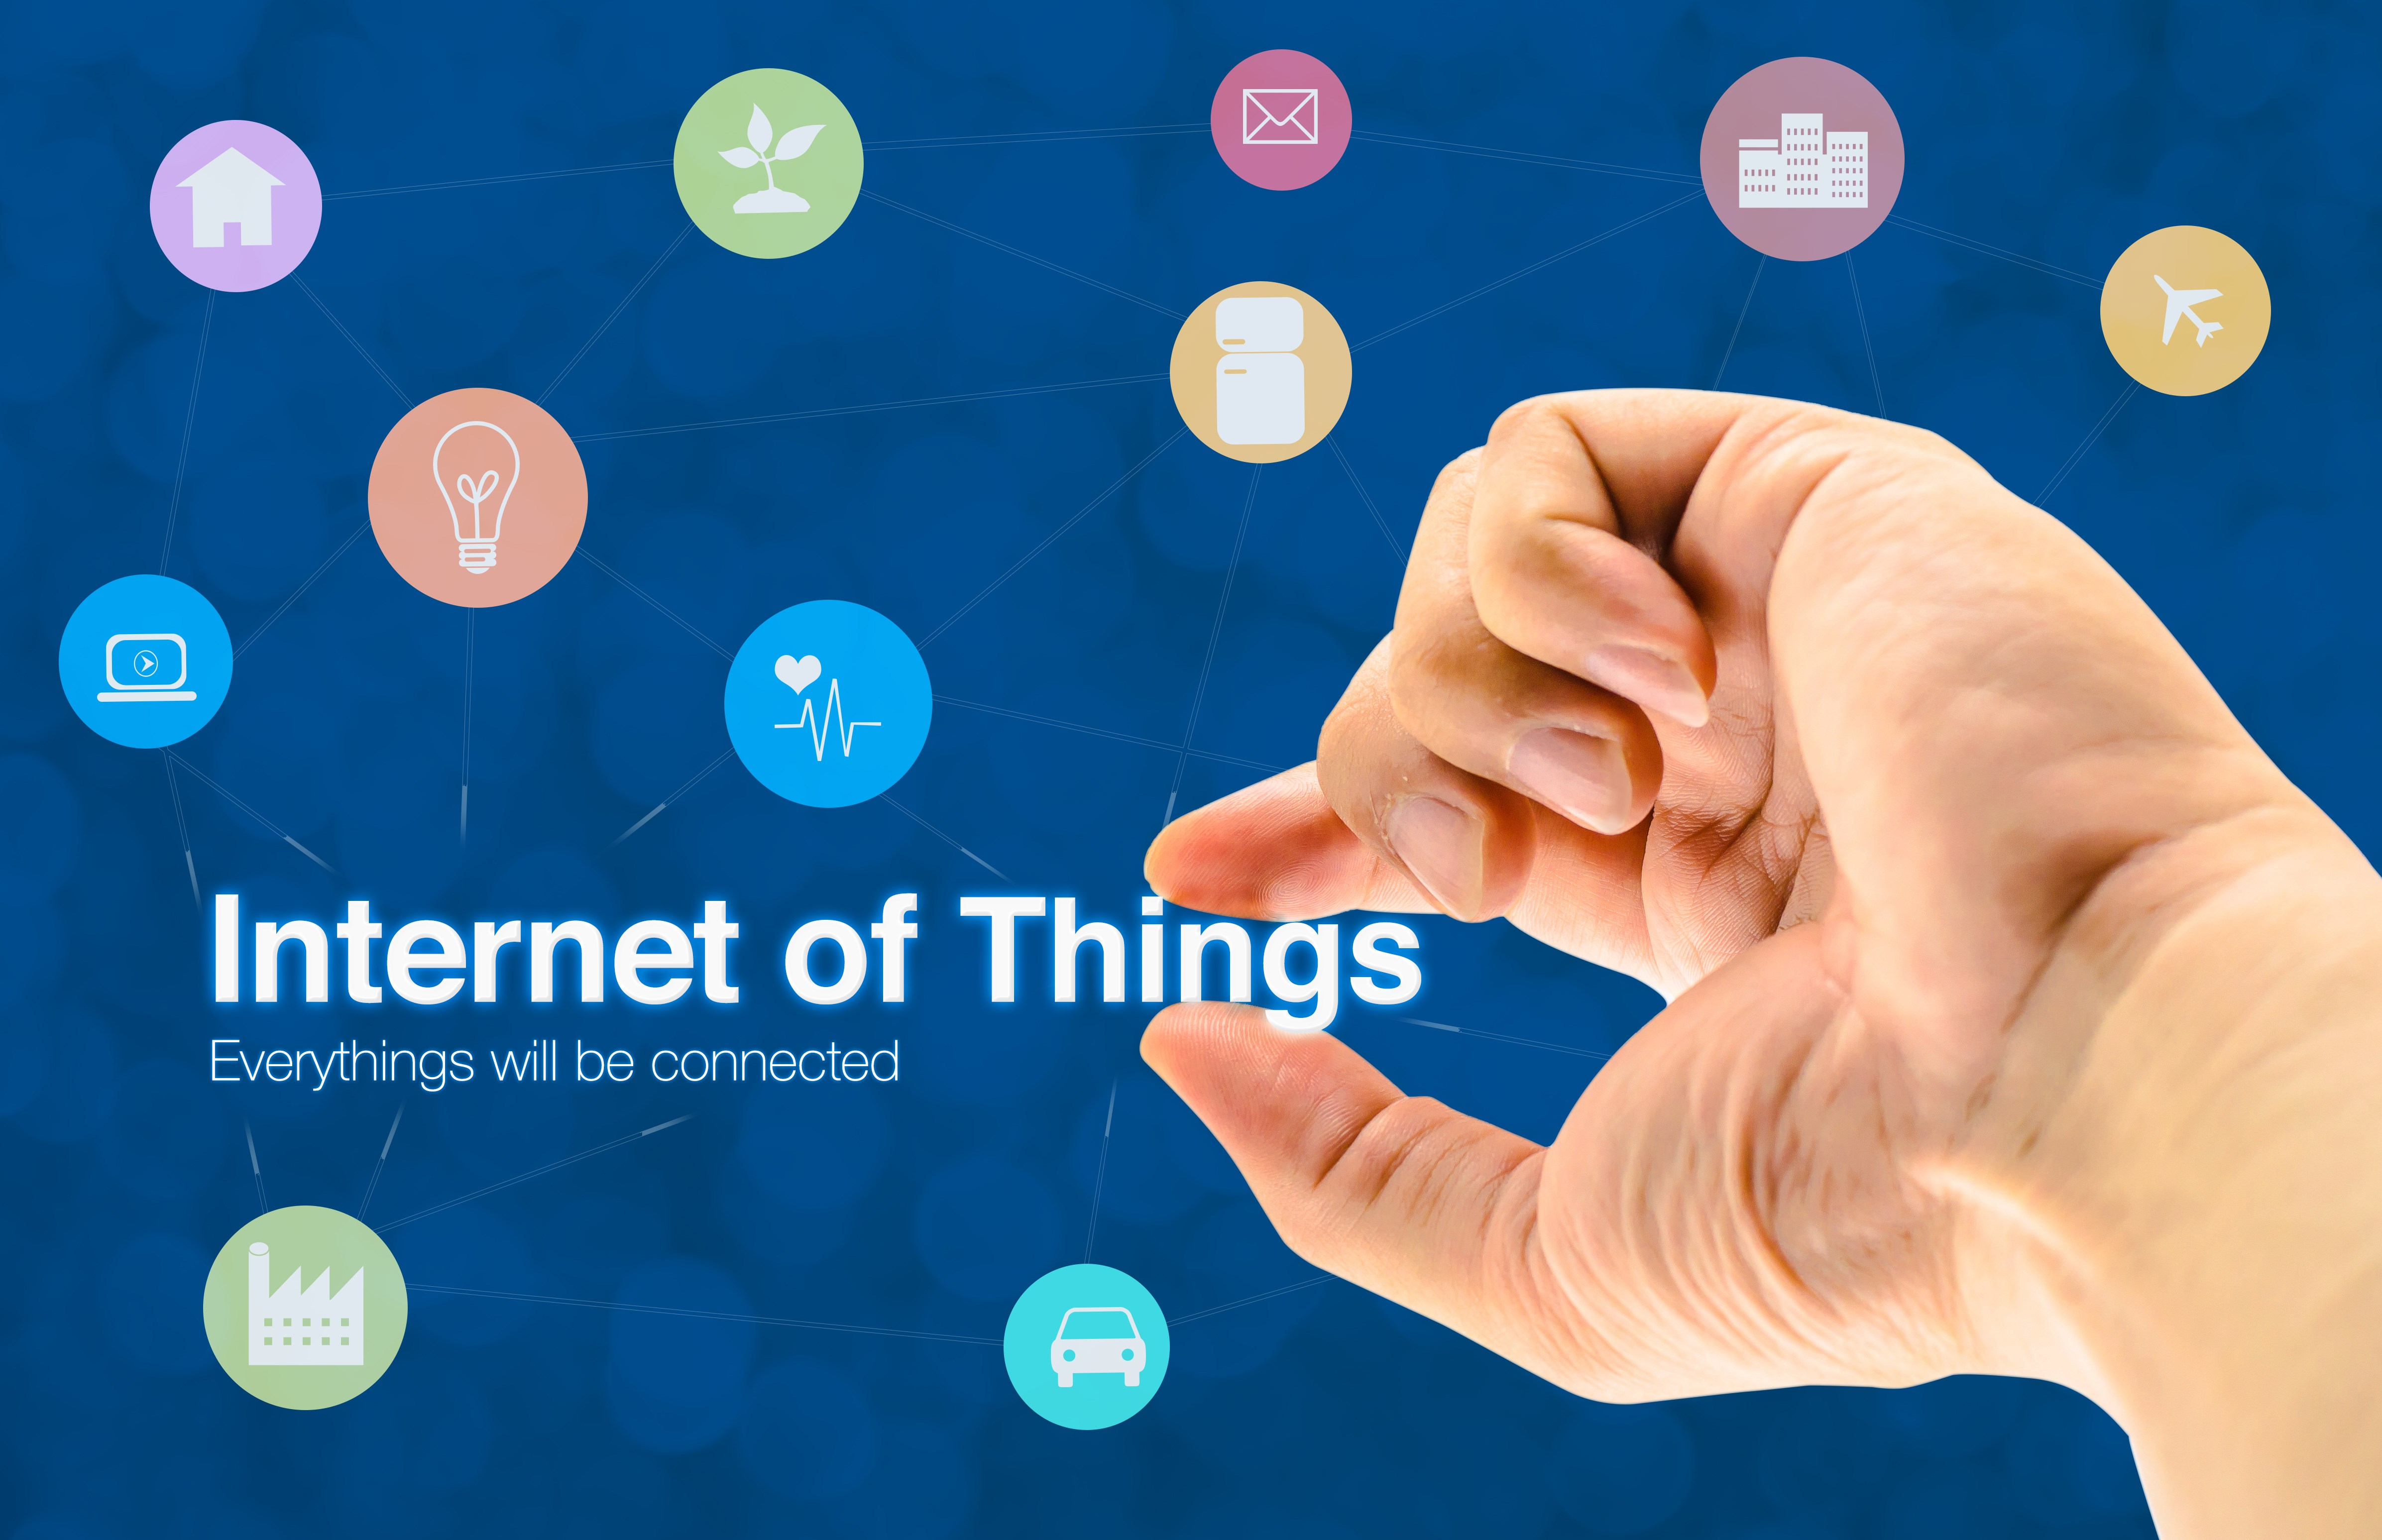 The Internet of Things - A Huge Opportunity, Wrapped in Risk